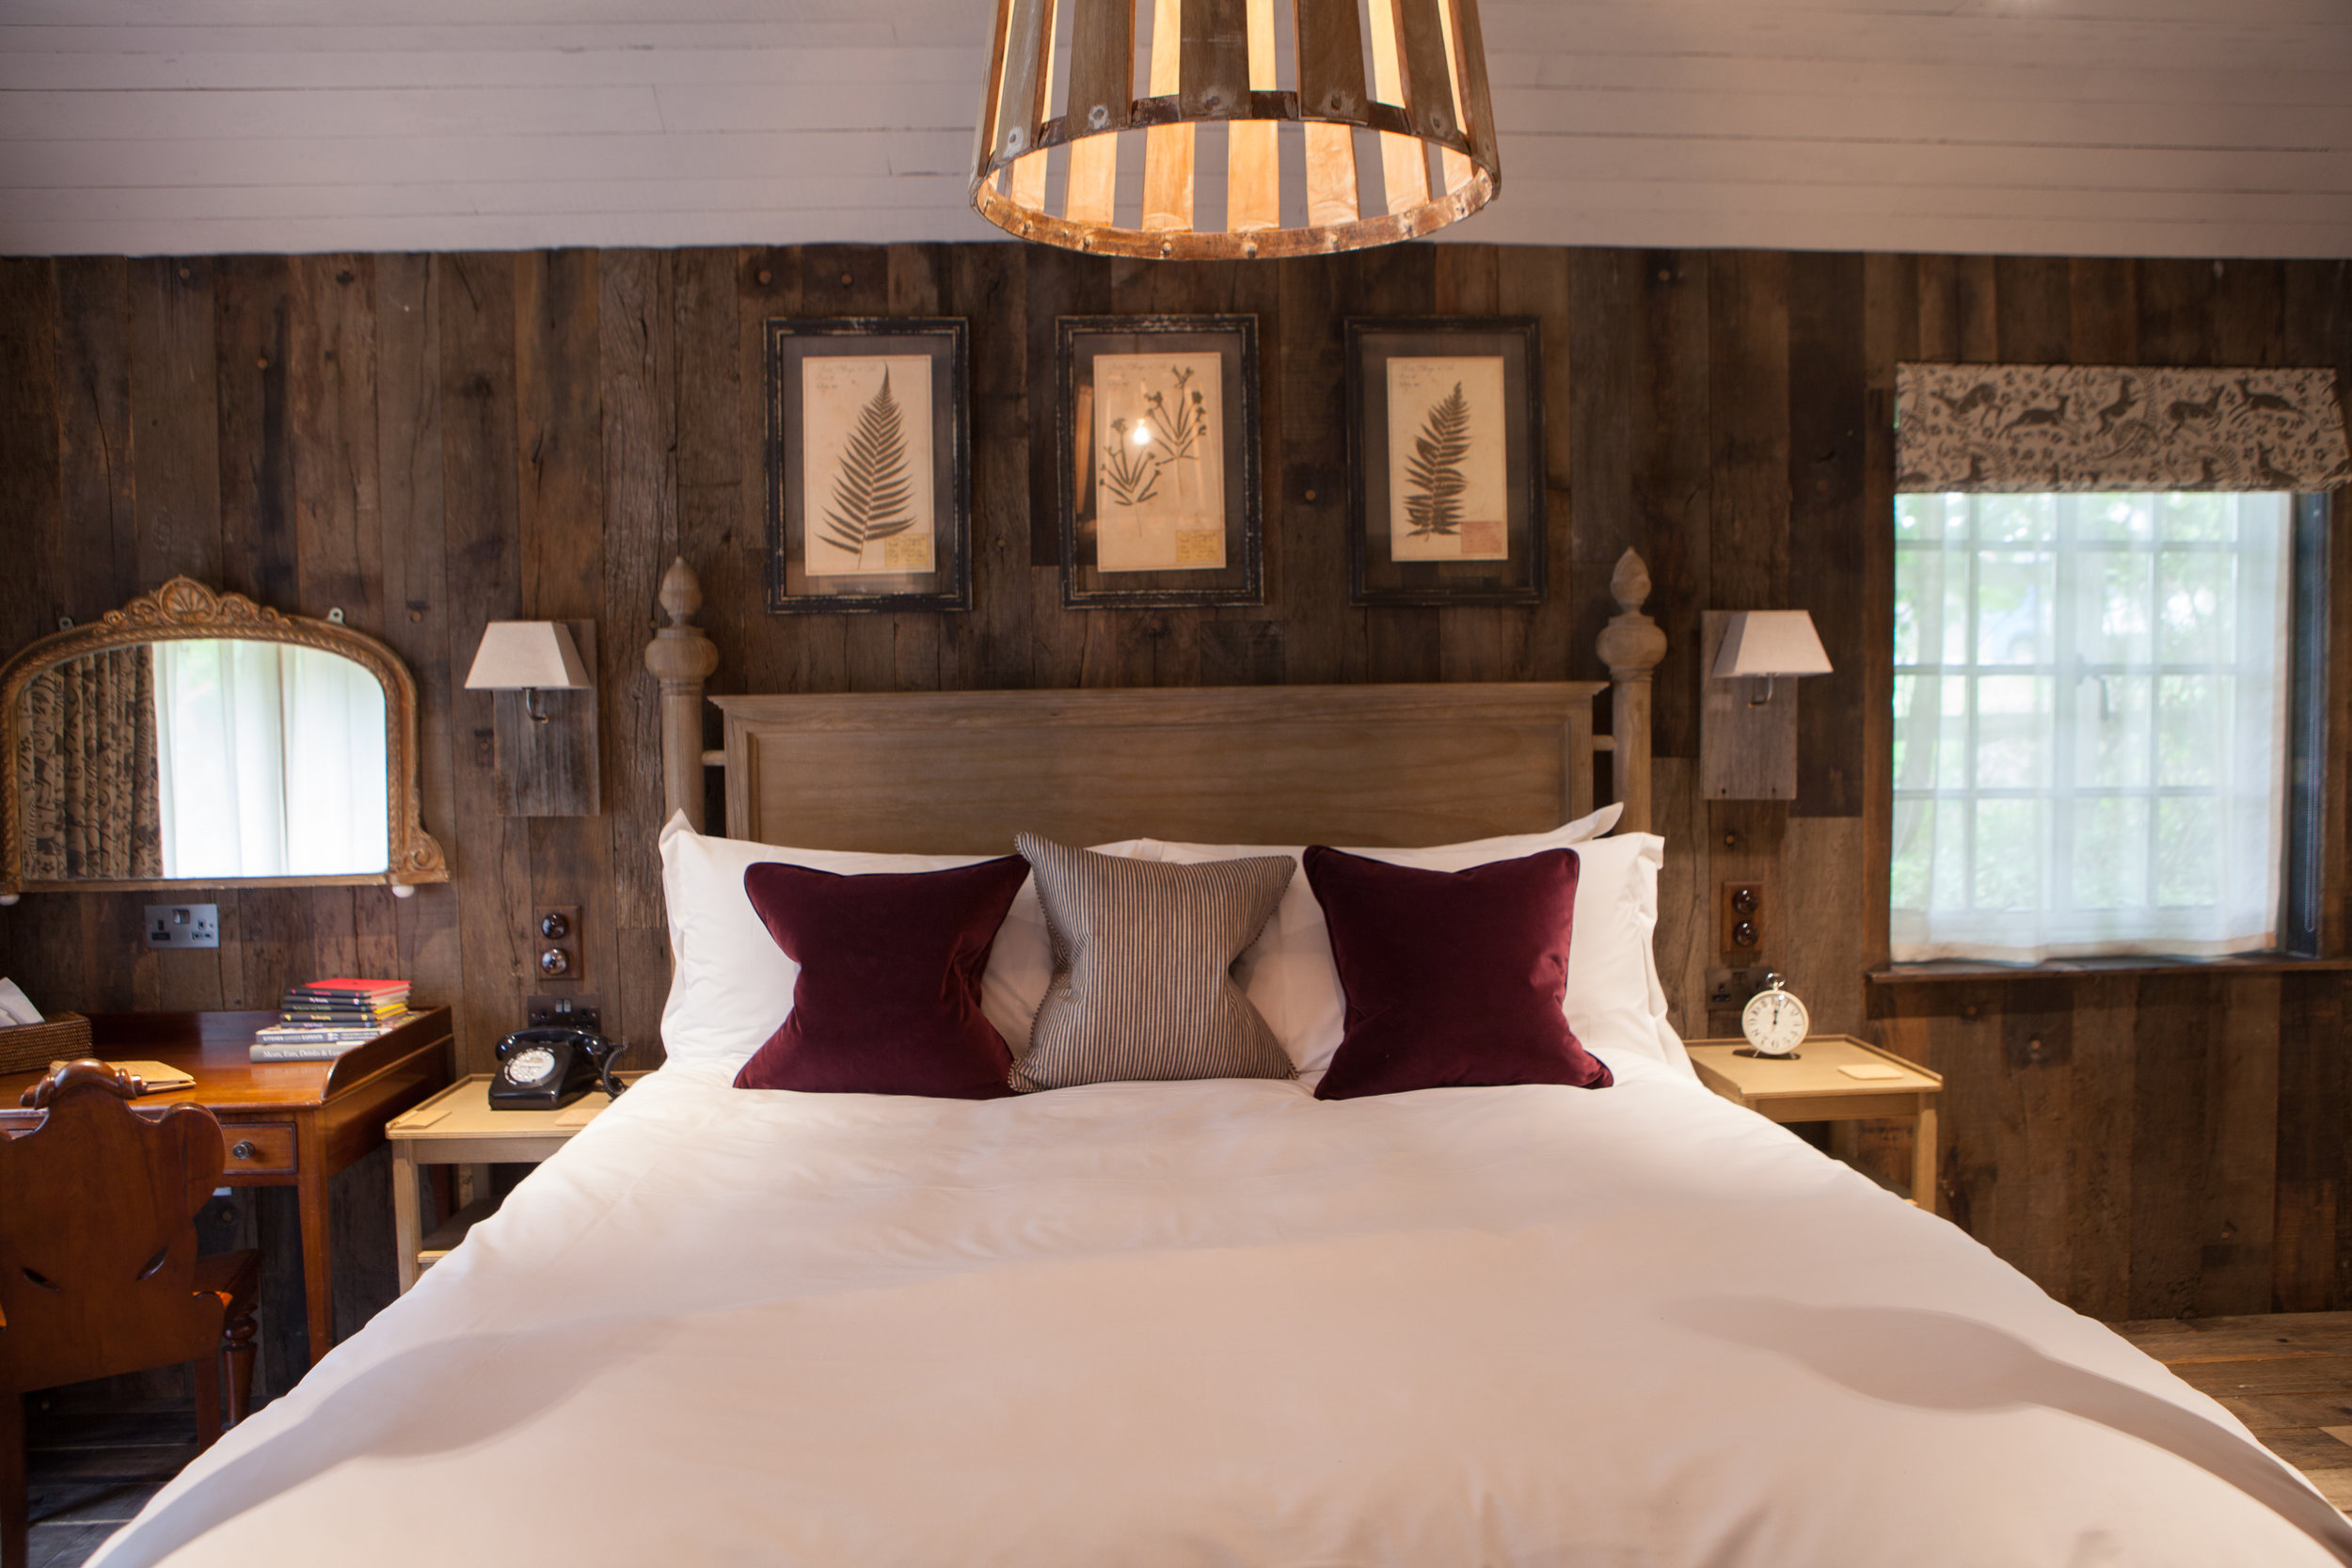 The Pig in The New Forest  - Book a weekend away in the magical New Forest at The Pig. Dine, walk, rest and pamper each other and yourselves nestled away from the hustle and bustle of daily life.